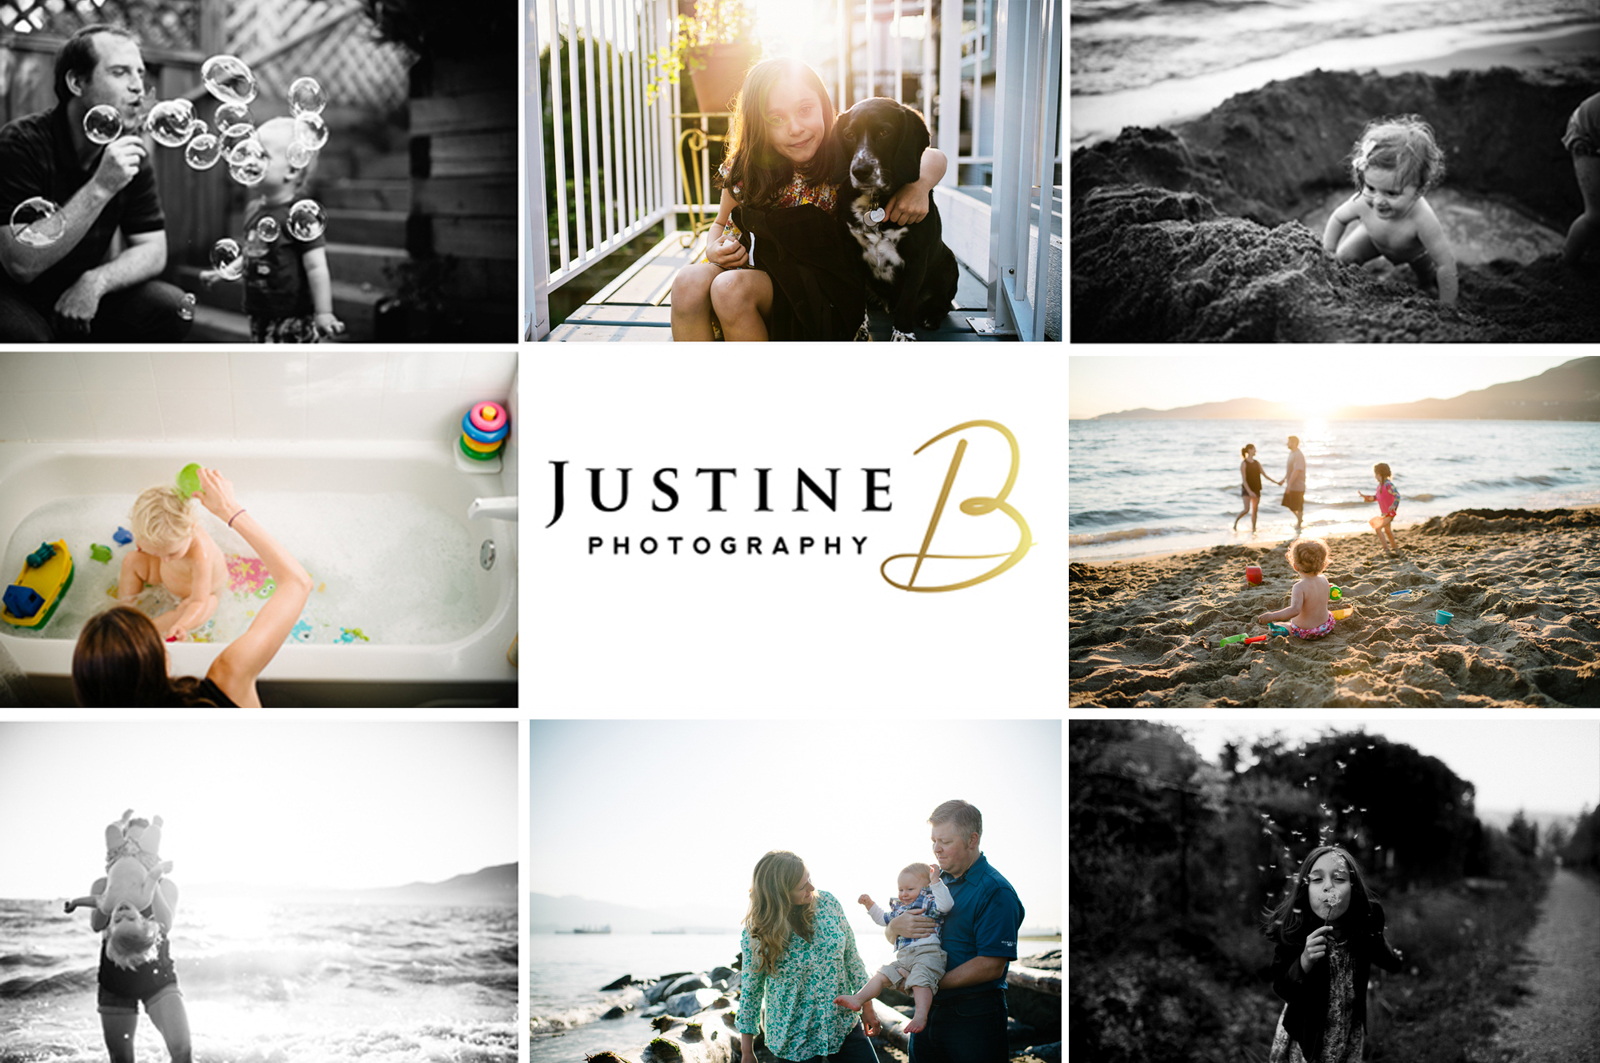 Justine B Photography